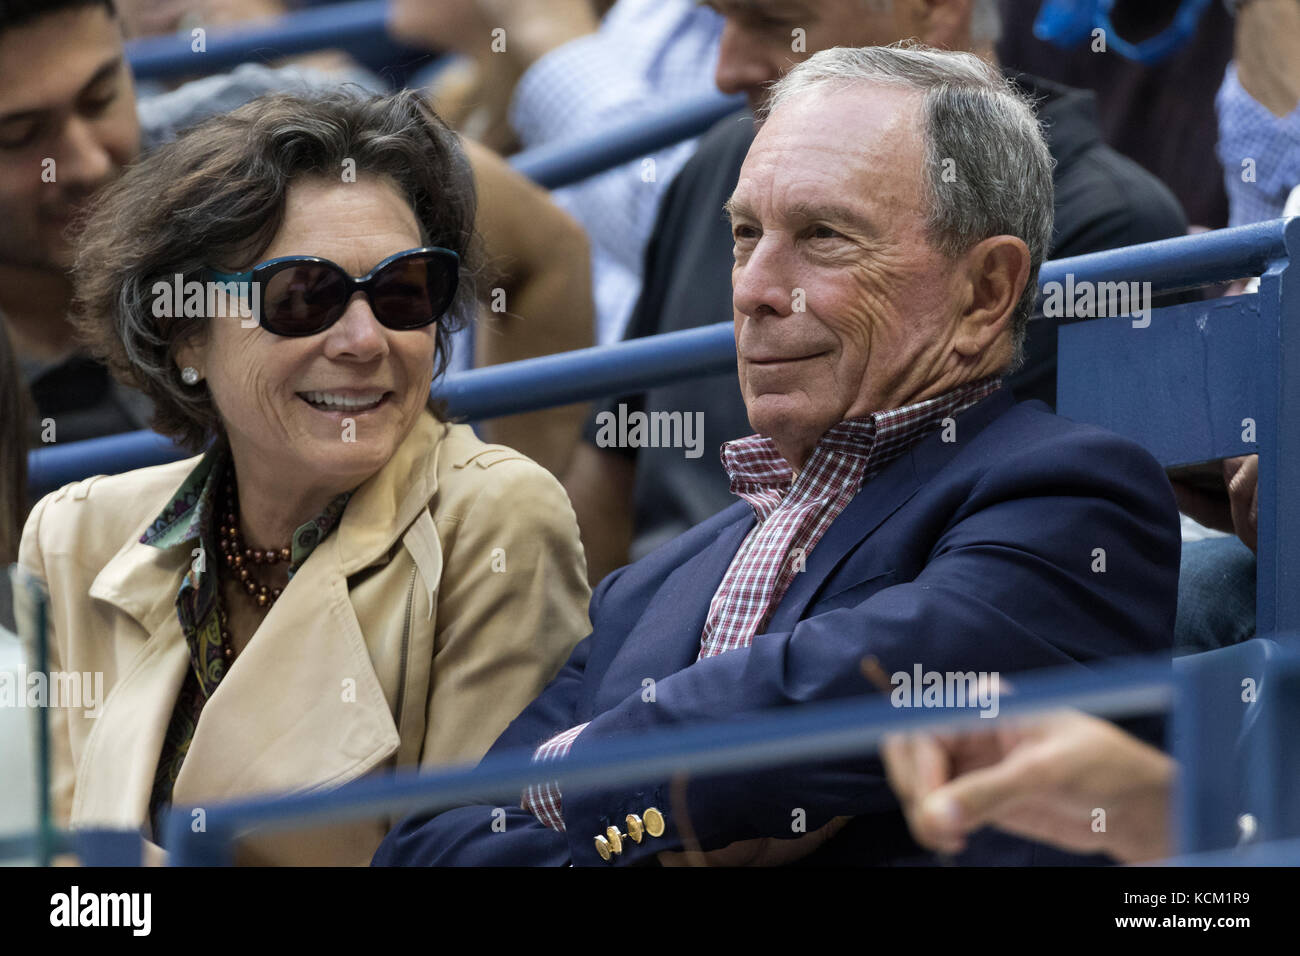 Michael and Diana Taylor Bloomberg watching the Men's Semi-Finals at the 2017 US Open Tennis Championships. - Stock Image